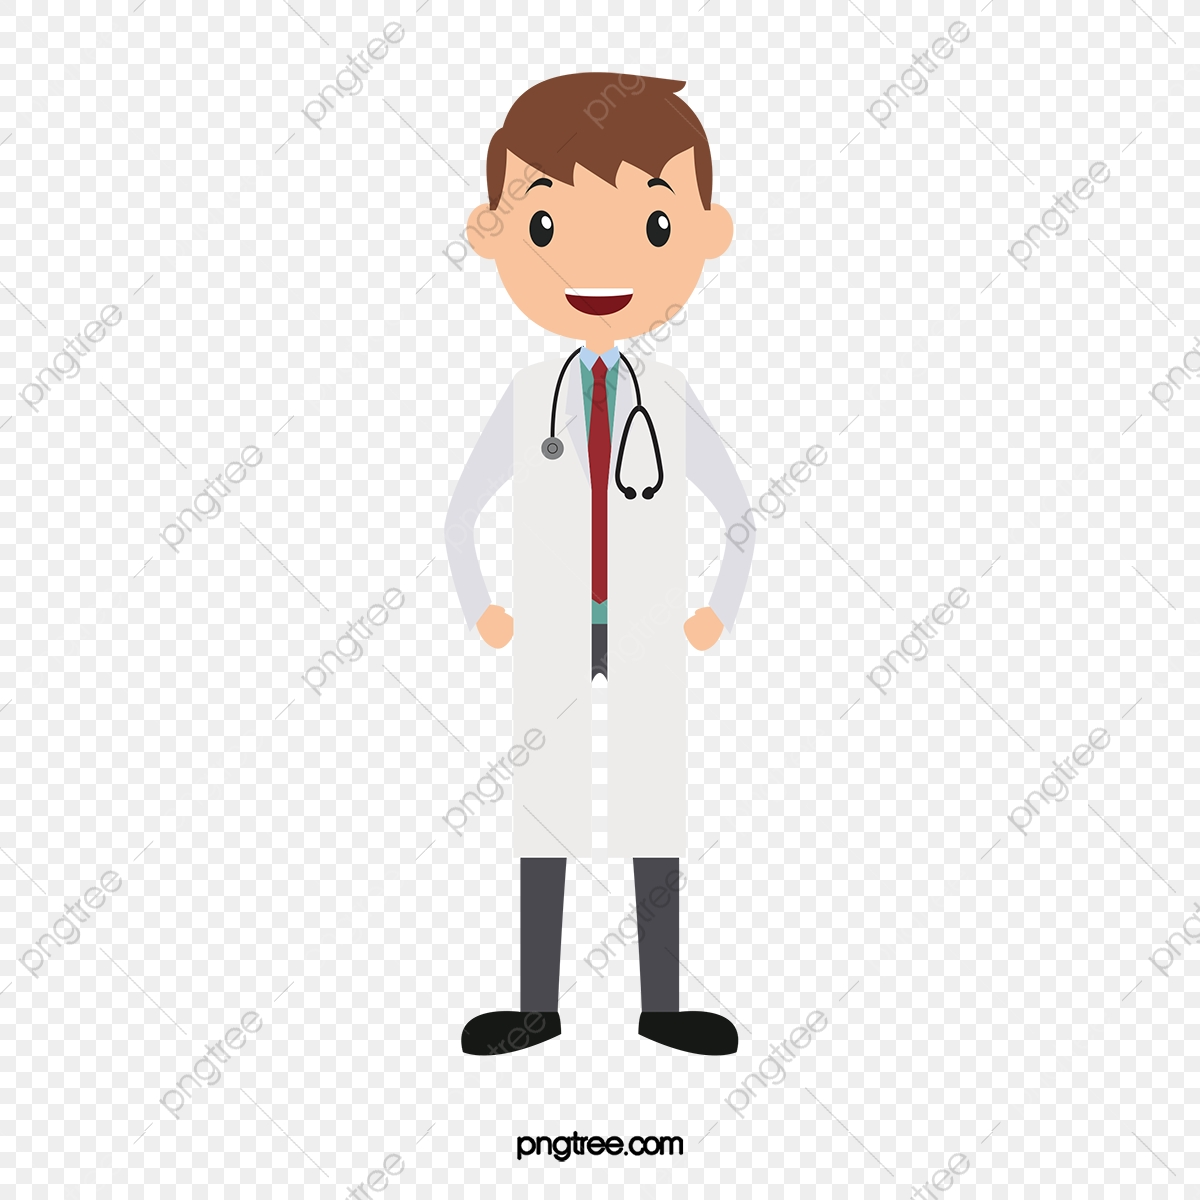 image download Young cartoon png and. Vector doctor transparent background